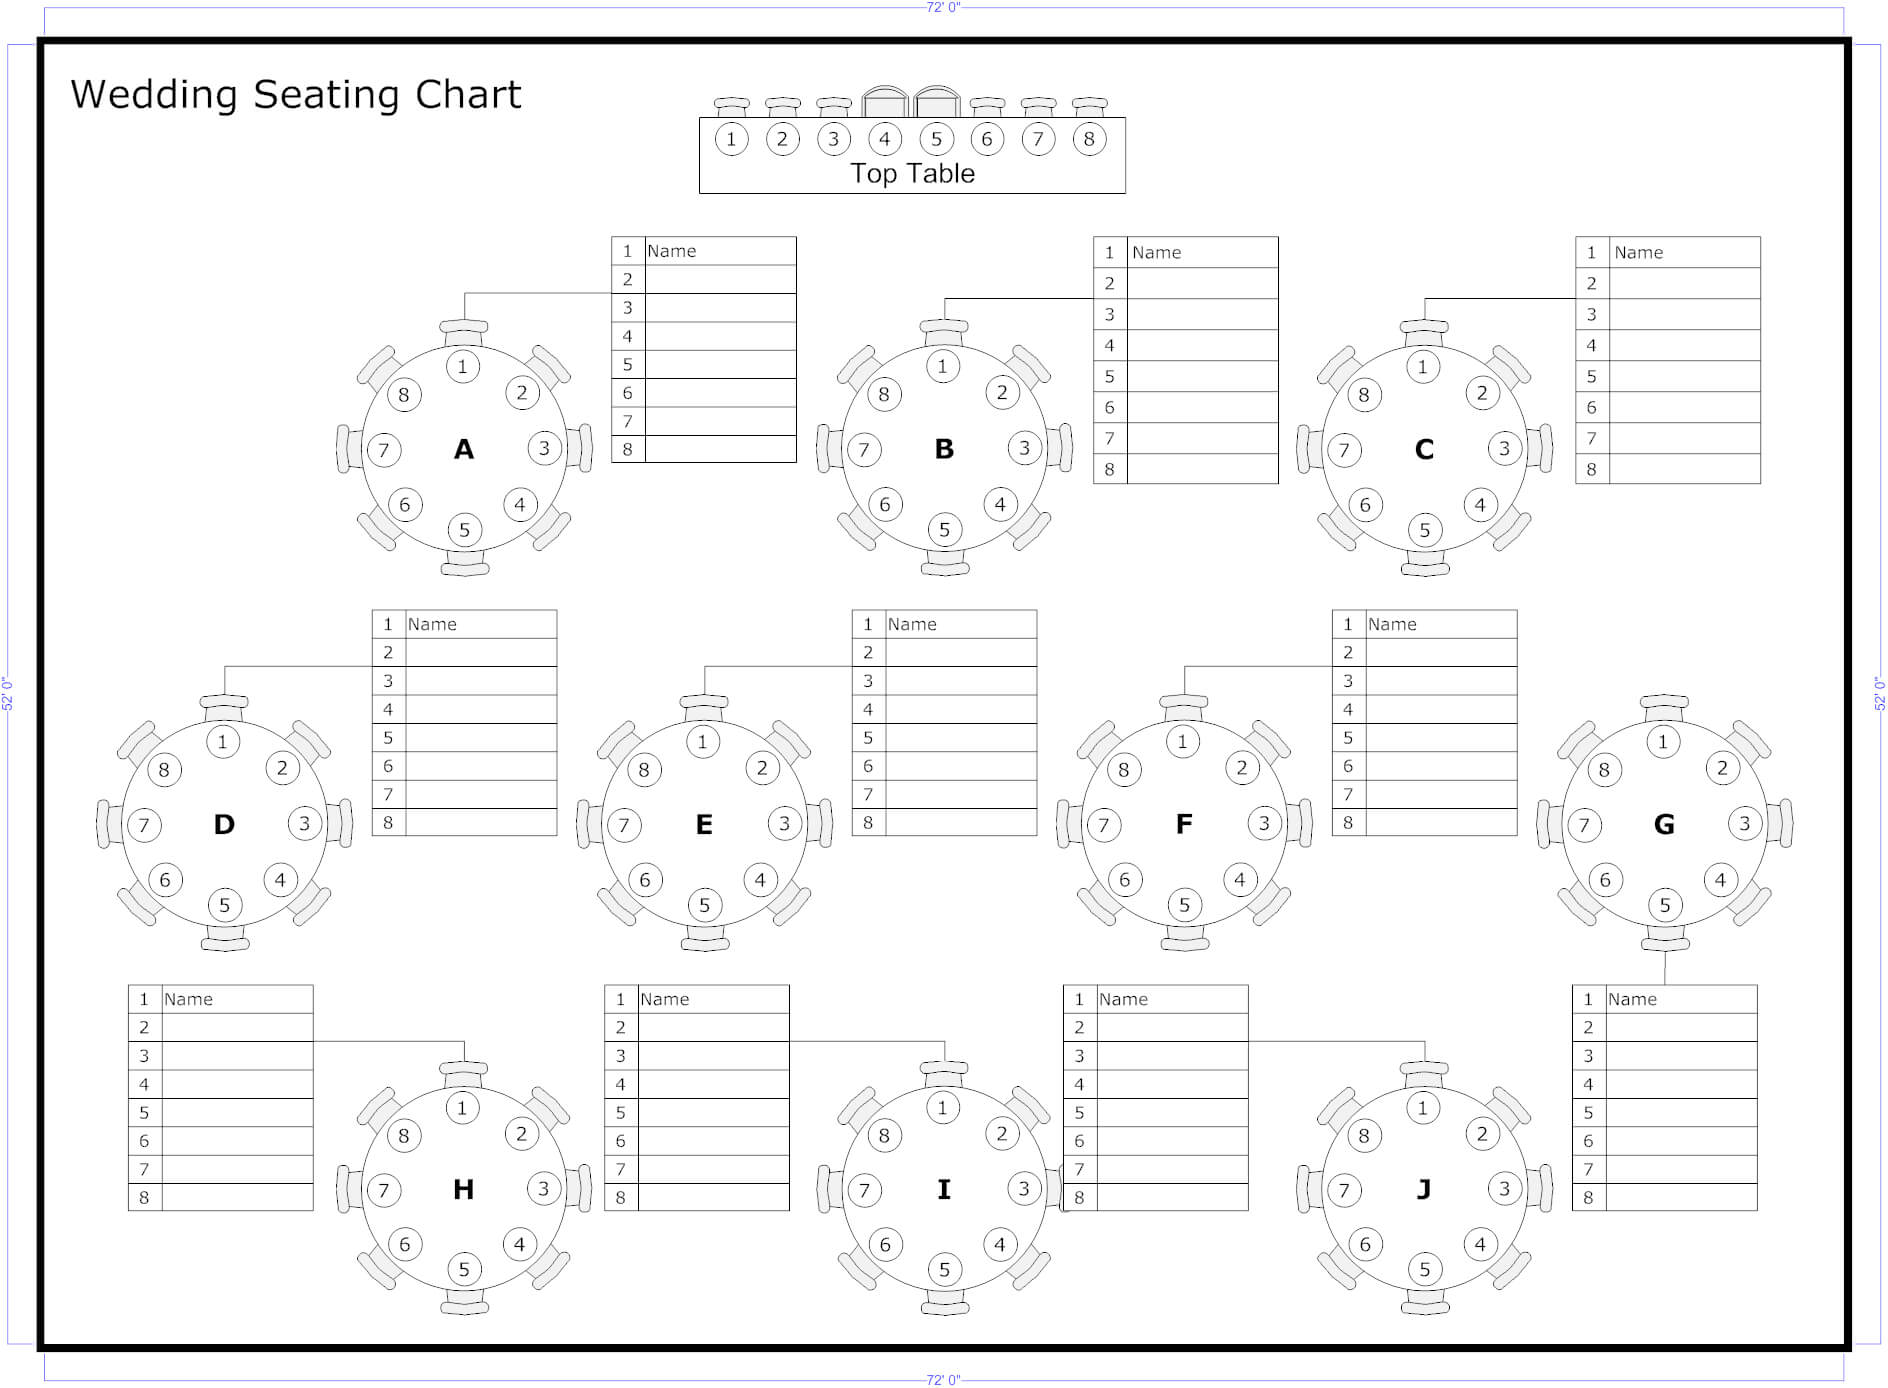 Reception Seating Charts 101   Seating Chart Wedding With Wedding Seating Chart Template Word